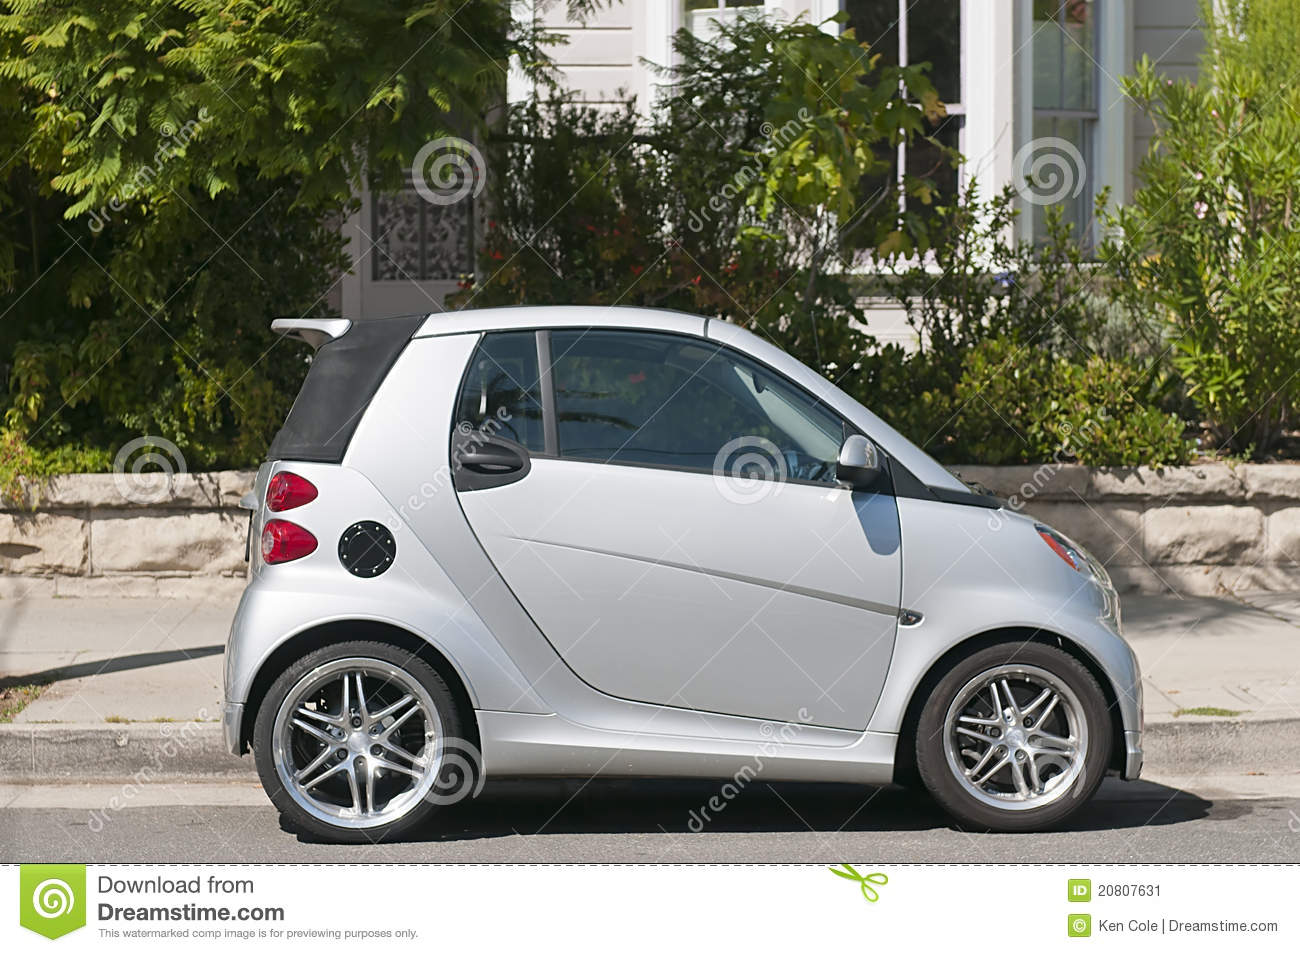 tiny, silver, subcompact Smart Car, parked on a residential street.